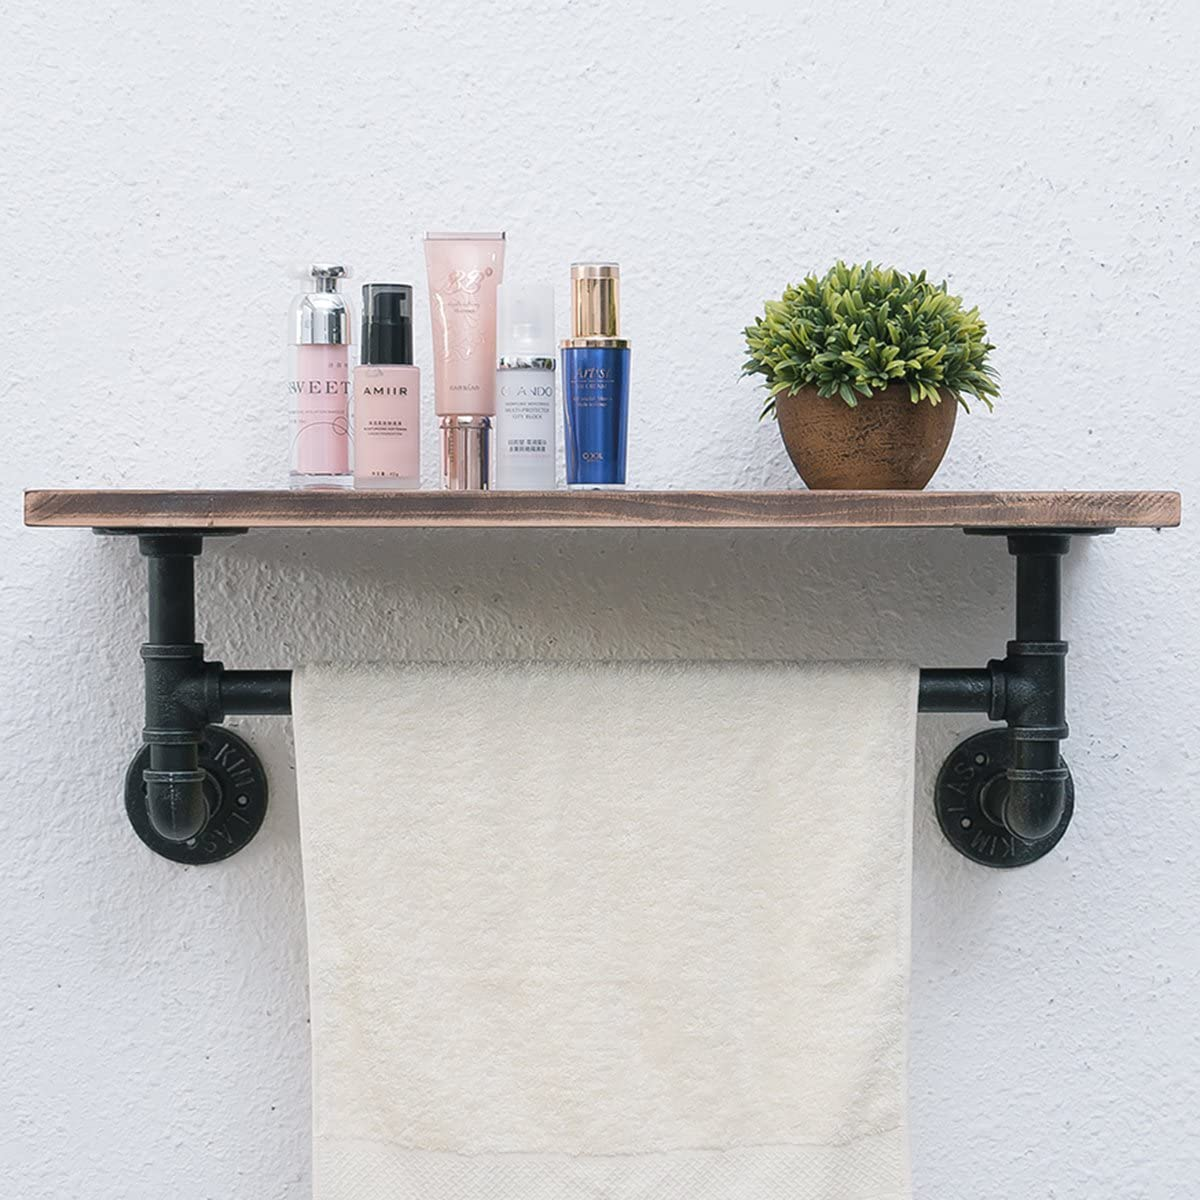 Industrial Pipe Shelf,Rustic Wall Shelf with Towel Bar,24 Towel Racks for Bathroom,1 Tiered Pipe Shelves Wood Shelf Shelving